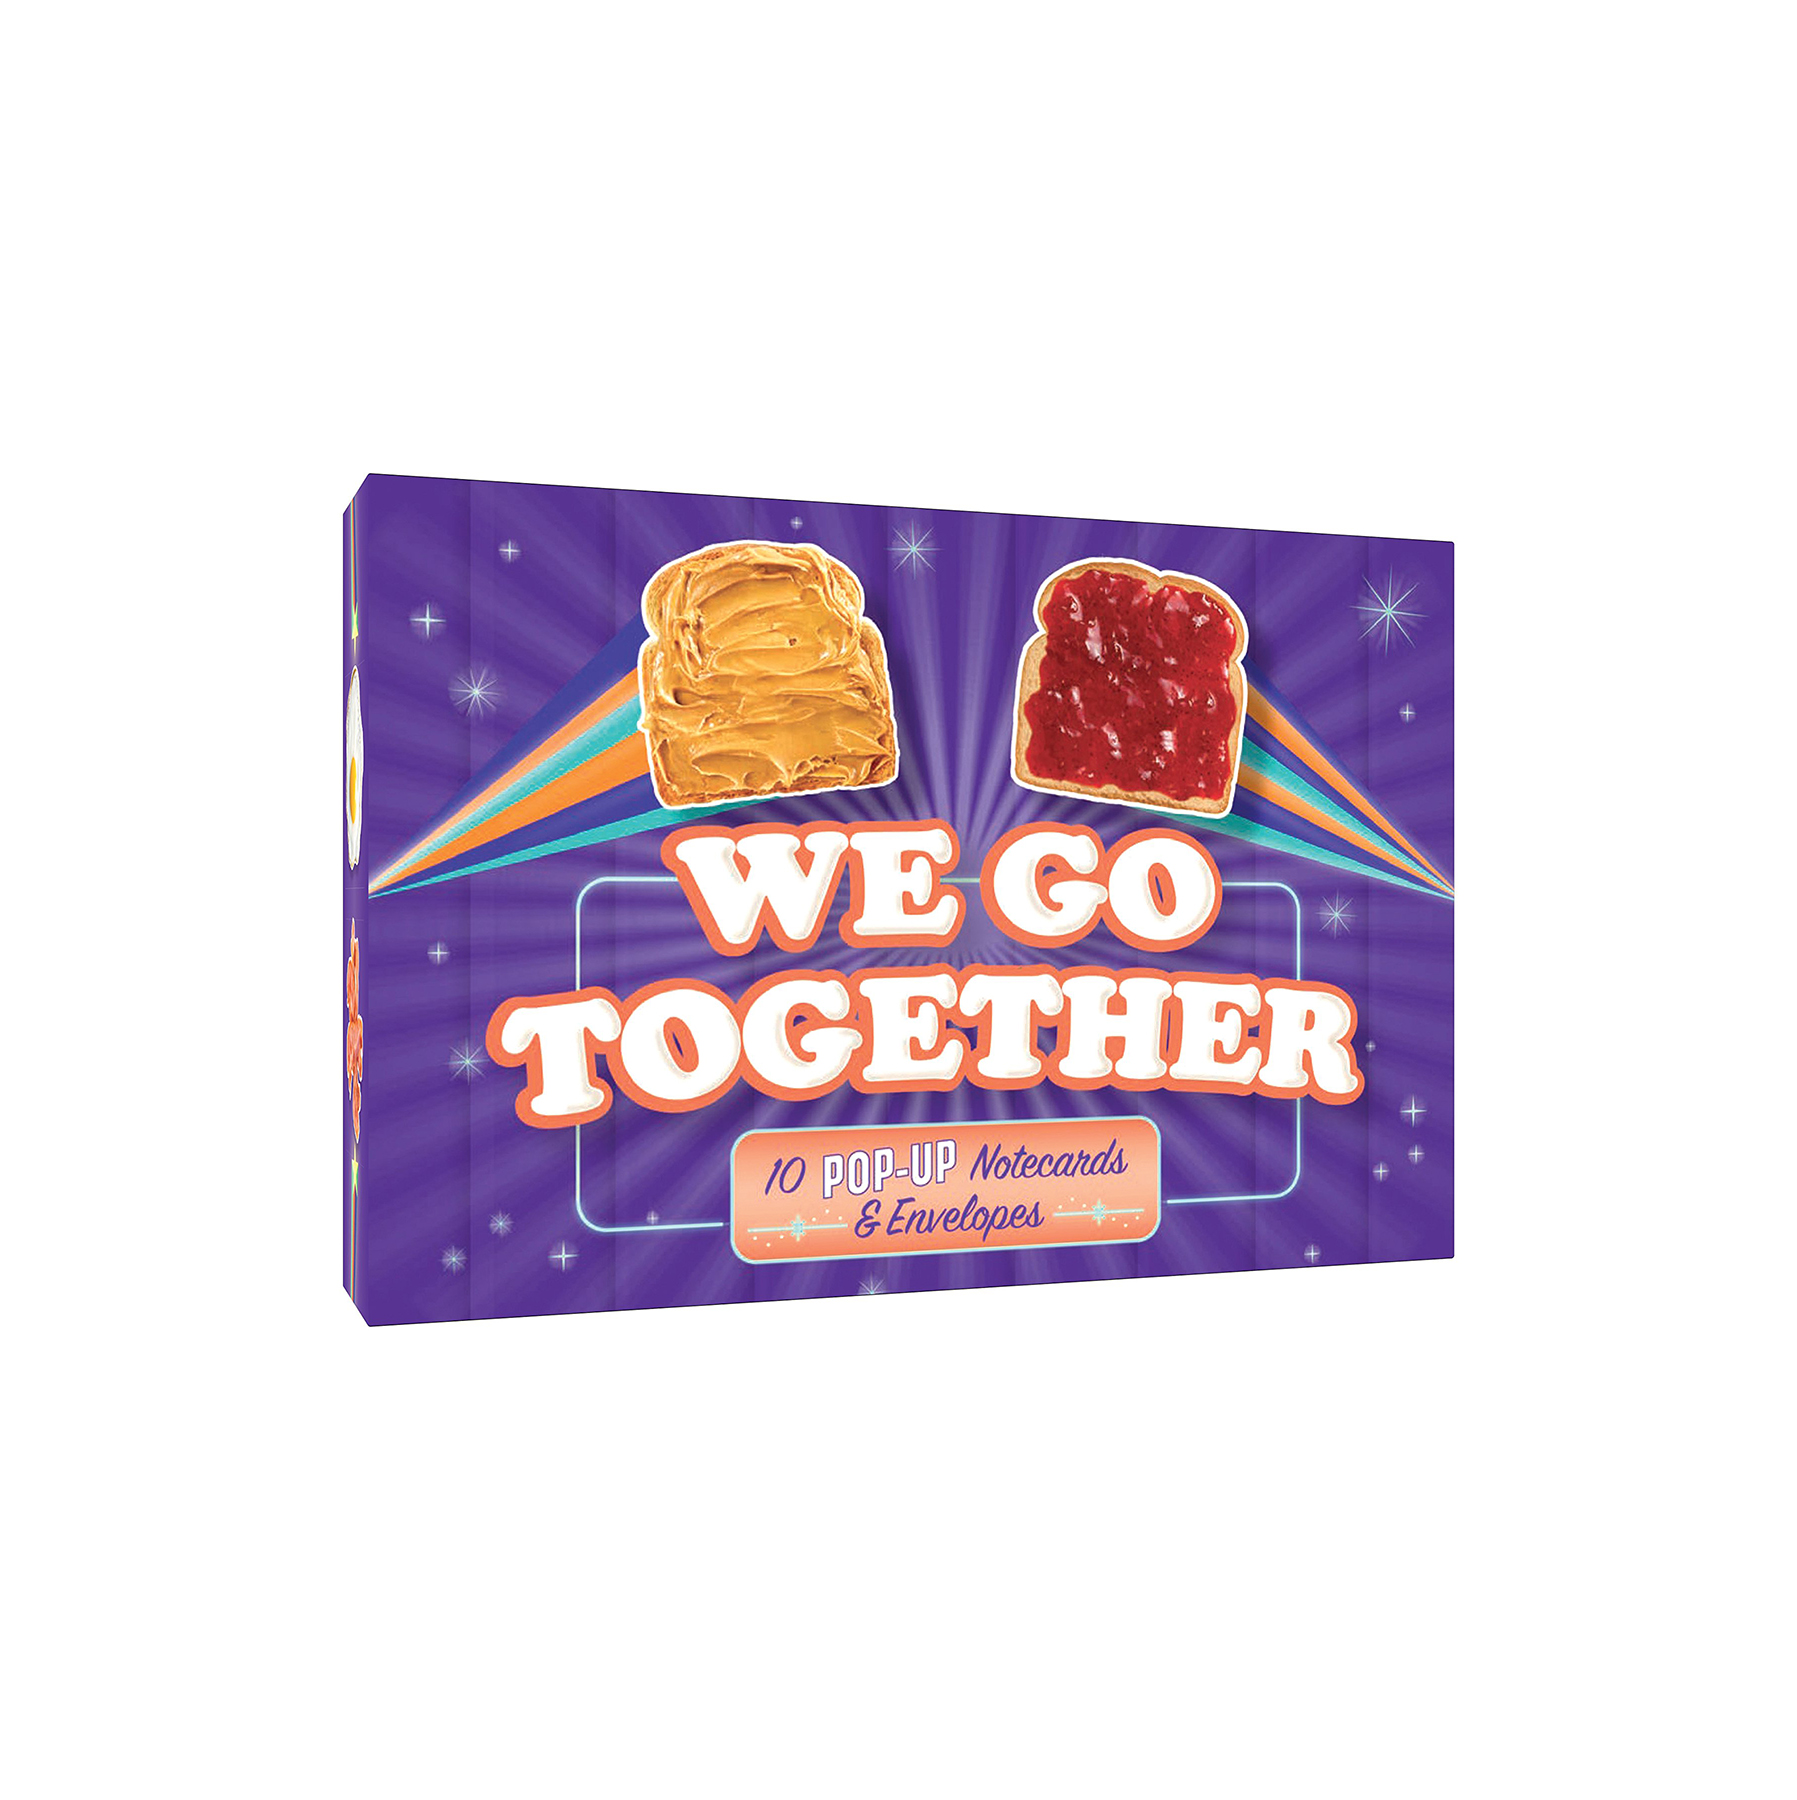 Funny Valentine's Day Gift Ideas: We Go Together Pop-Up Notecard Collection